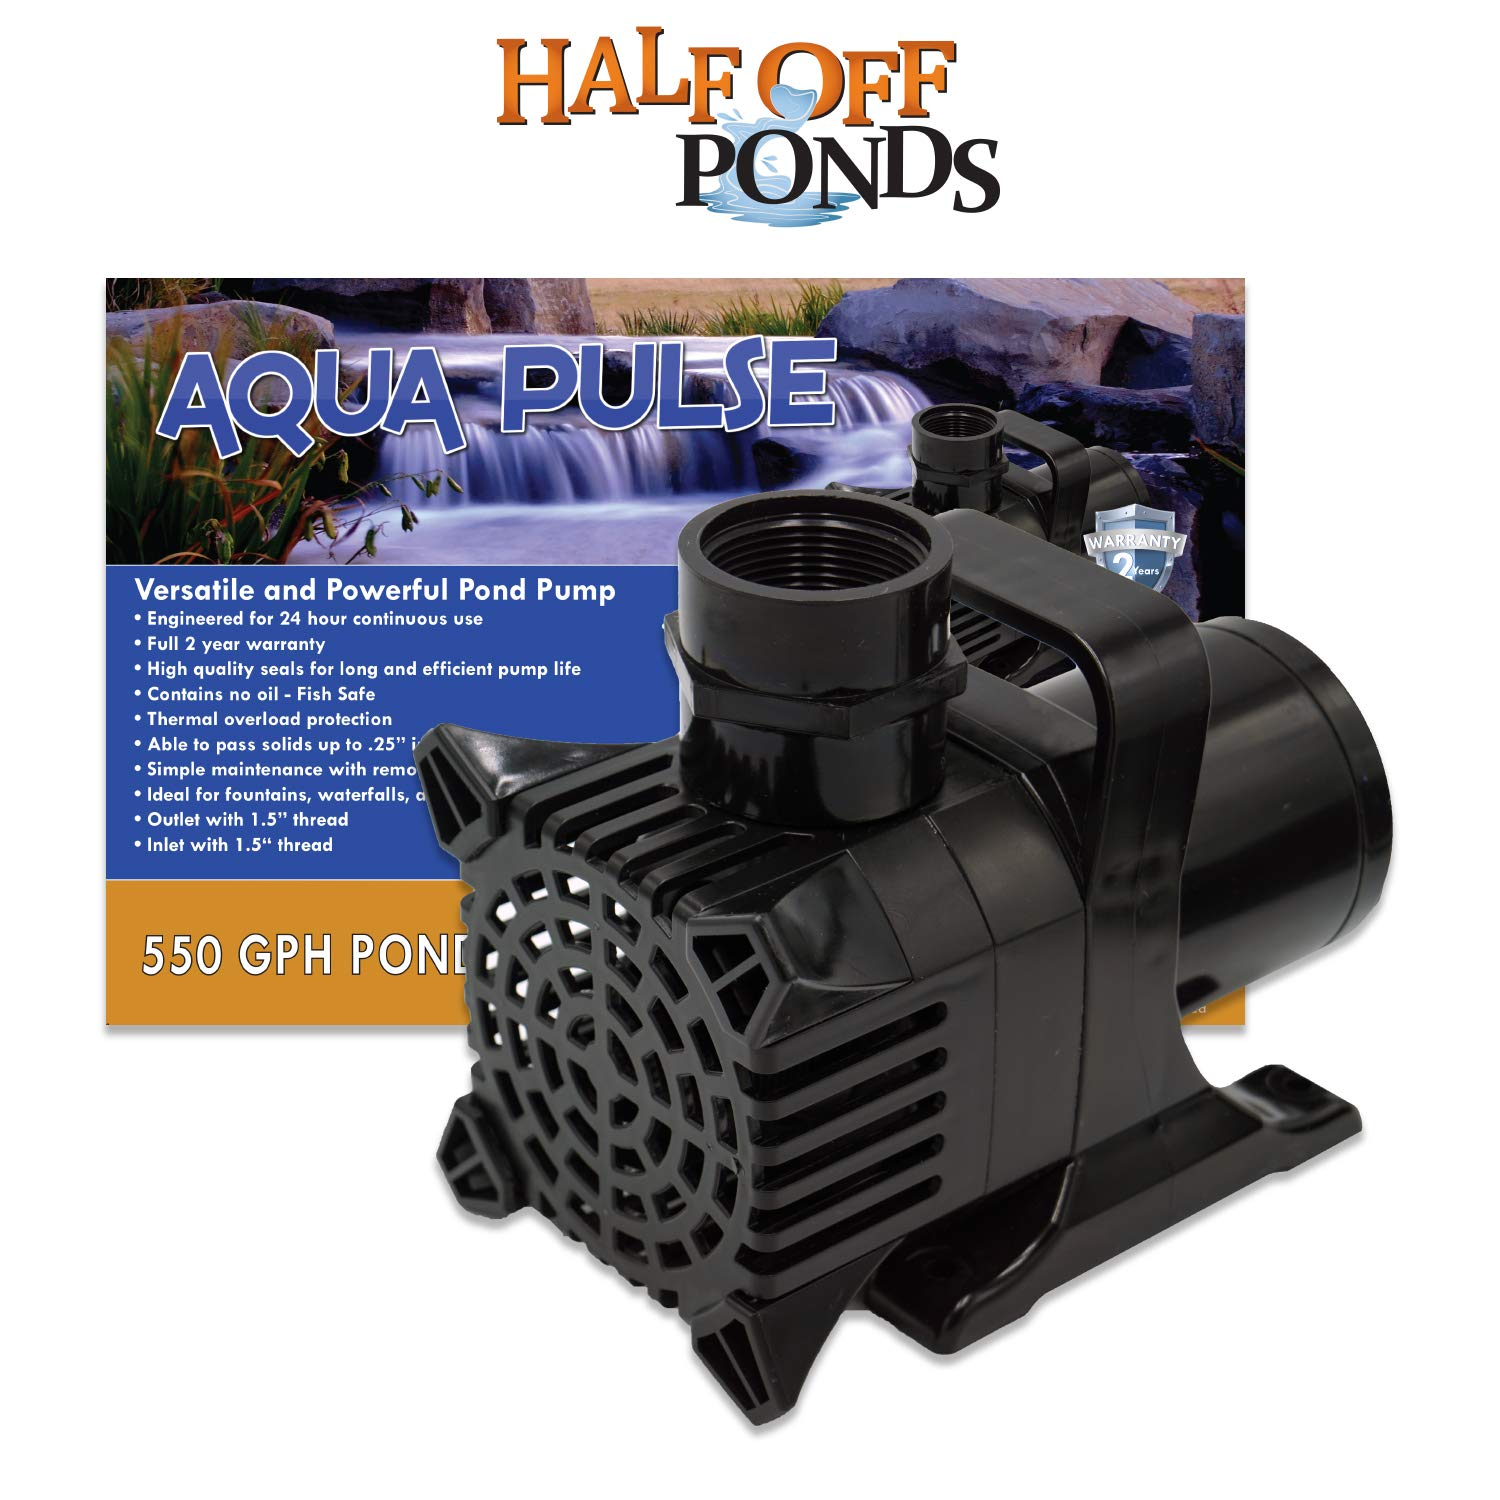 Aqua Pulse 1,600 GPH Submersible Pump for Ponds, Water Gardens, Pondless Waterfalls and Skimmers